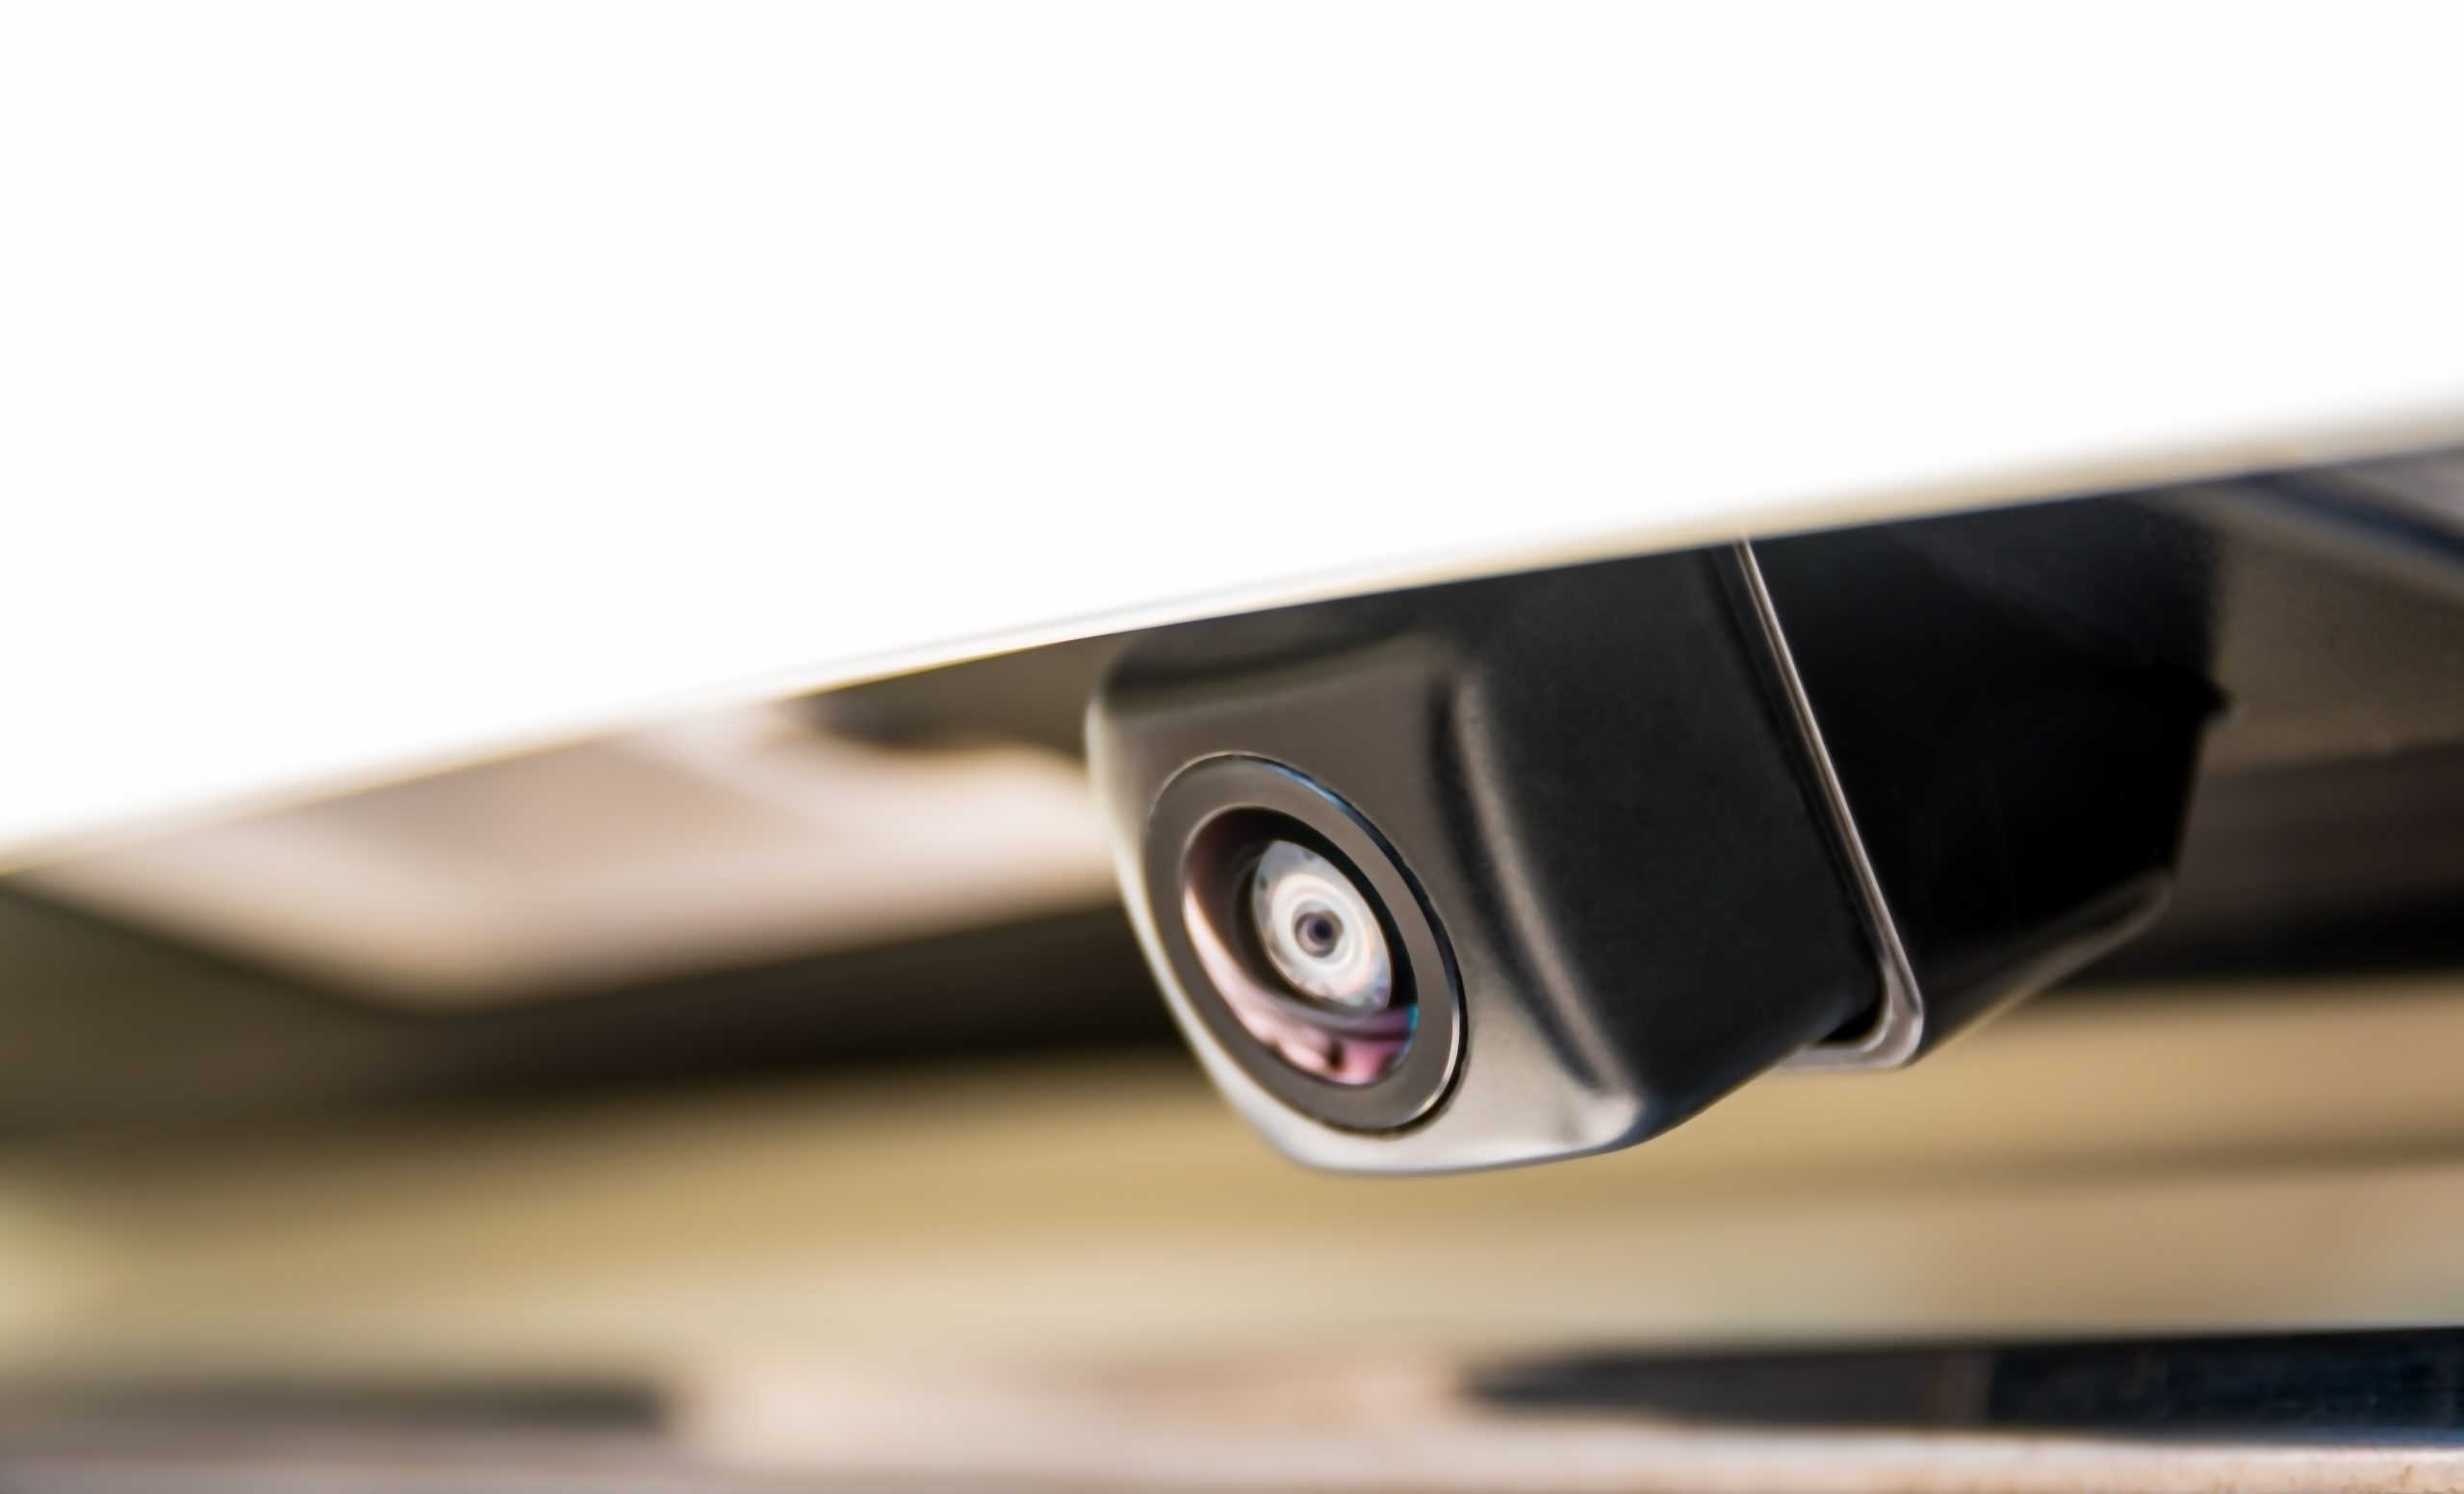 Why Buy a Backup Camera?